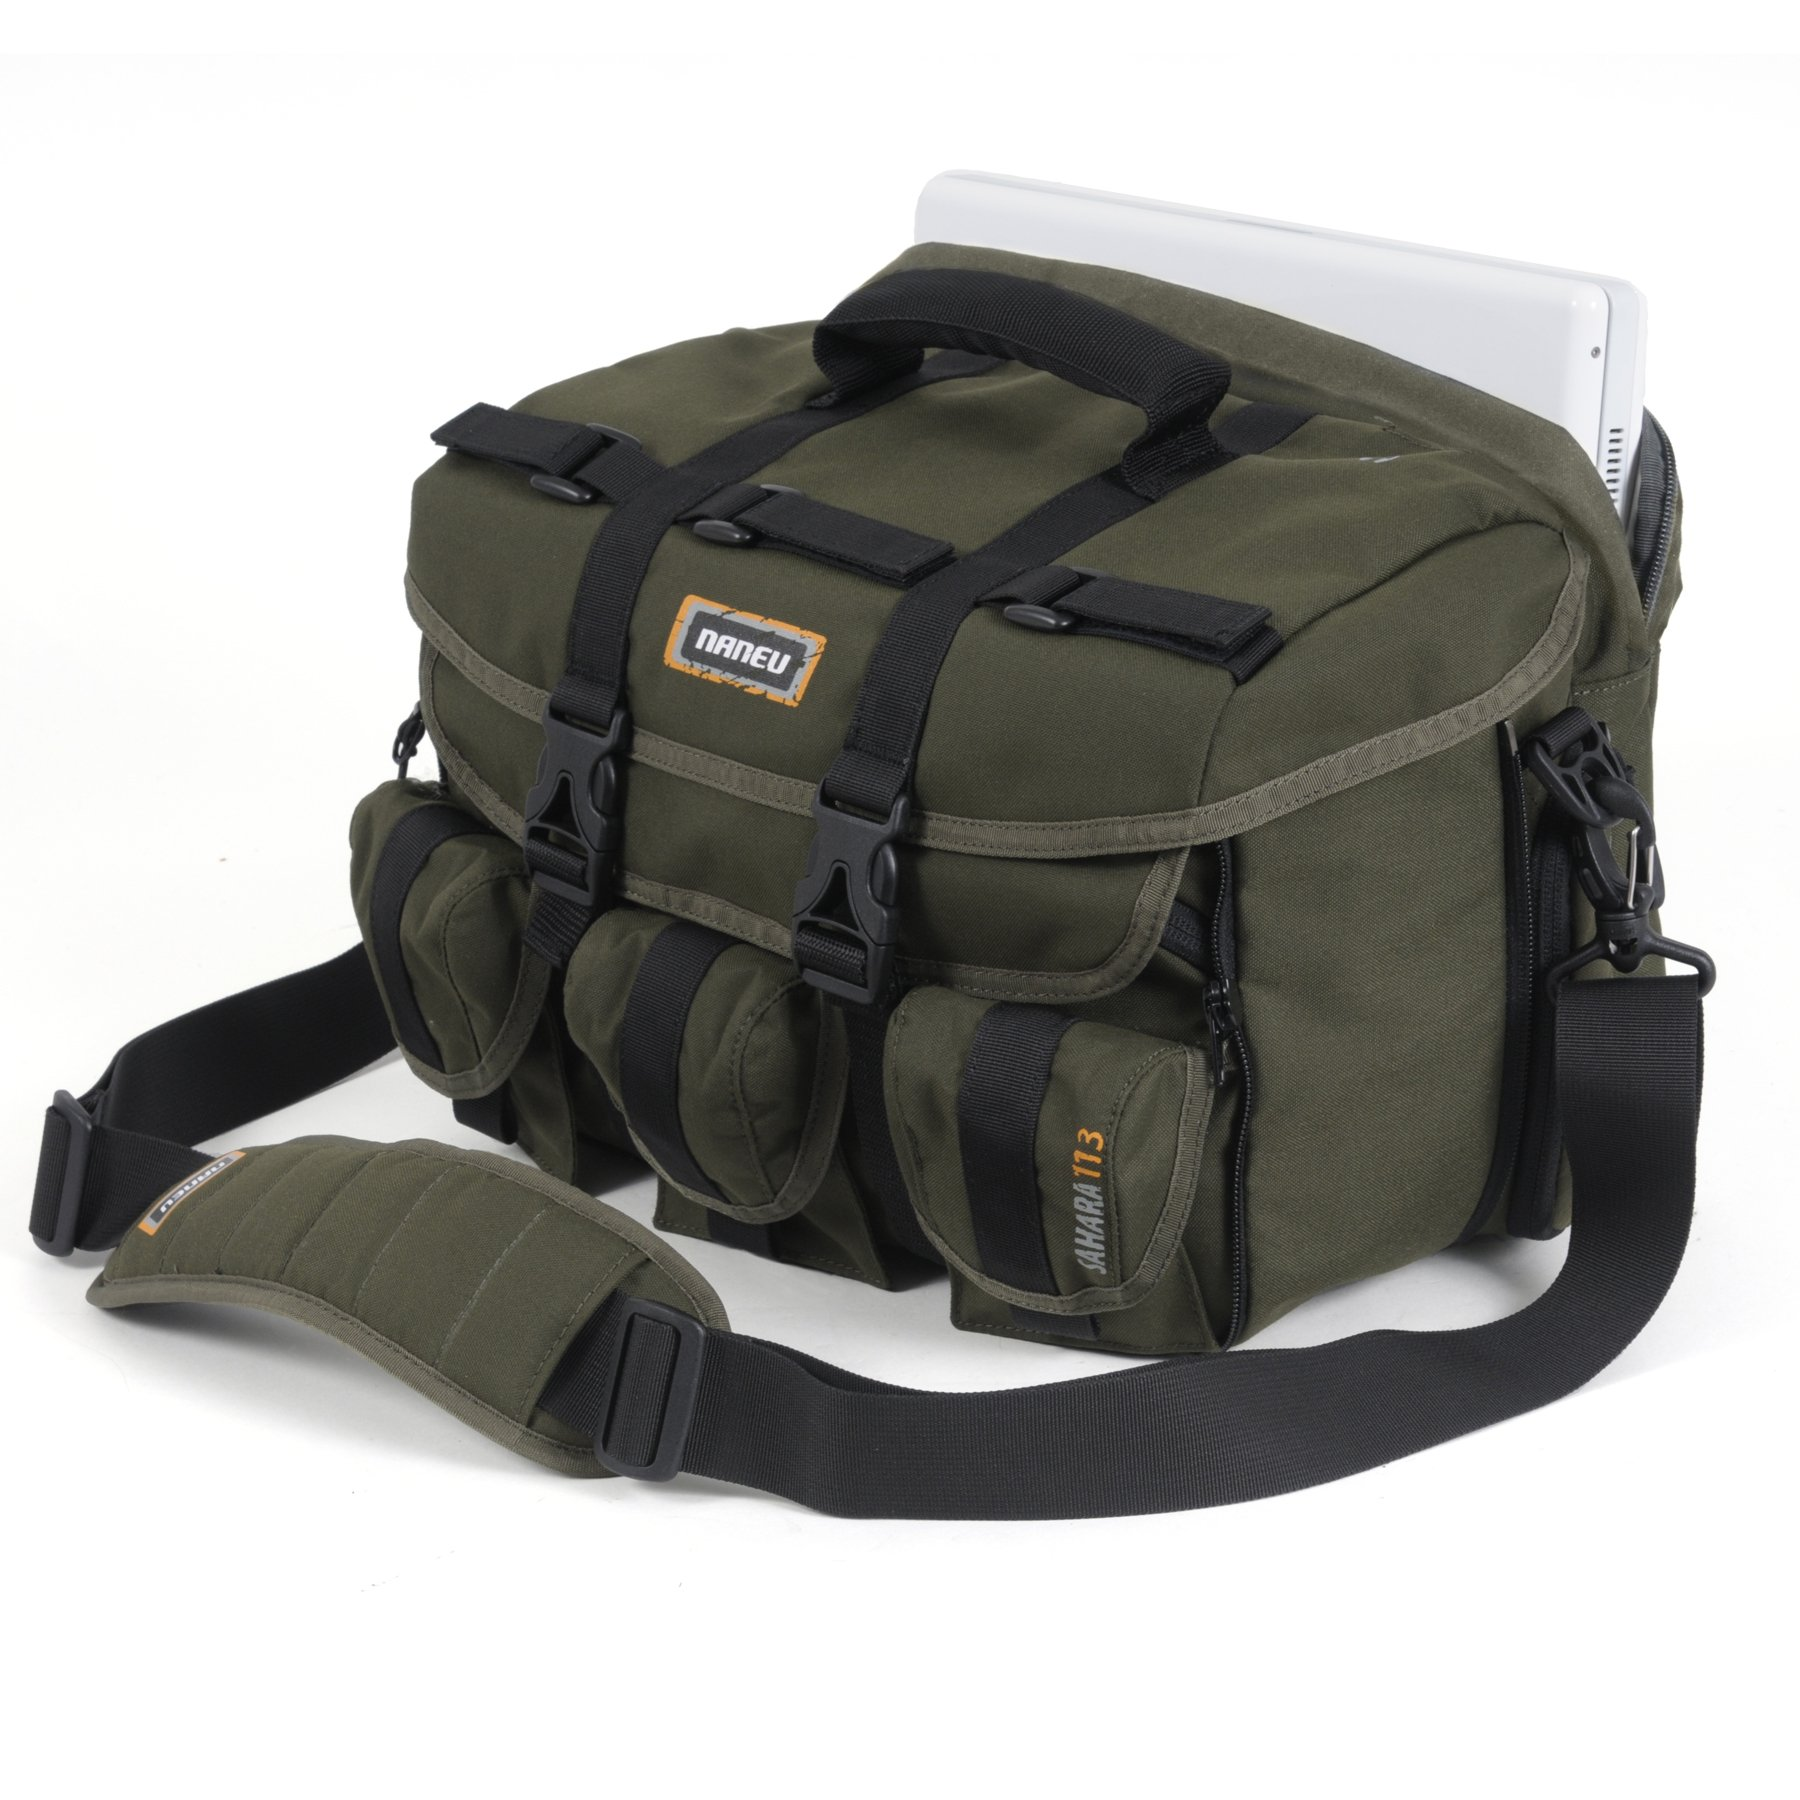 Naneu 115f Grn Sahara Expandable Shoulder Camera Bag with 15.4-Inch Laptop Sleeve (Green)